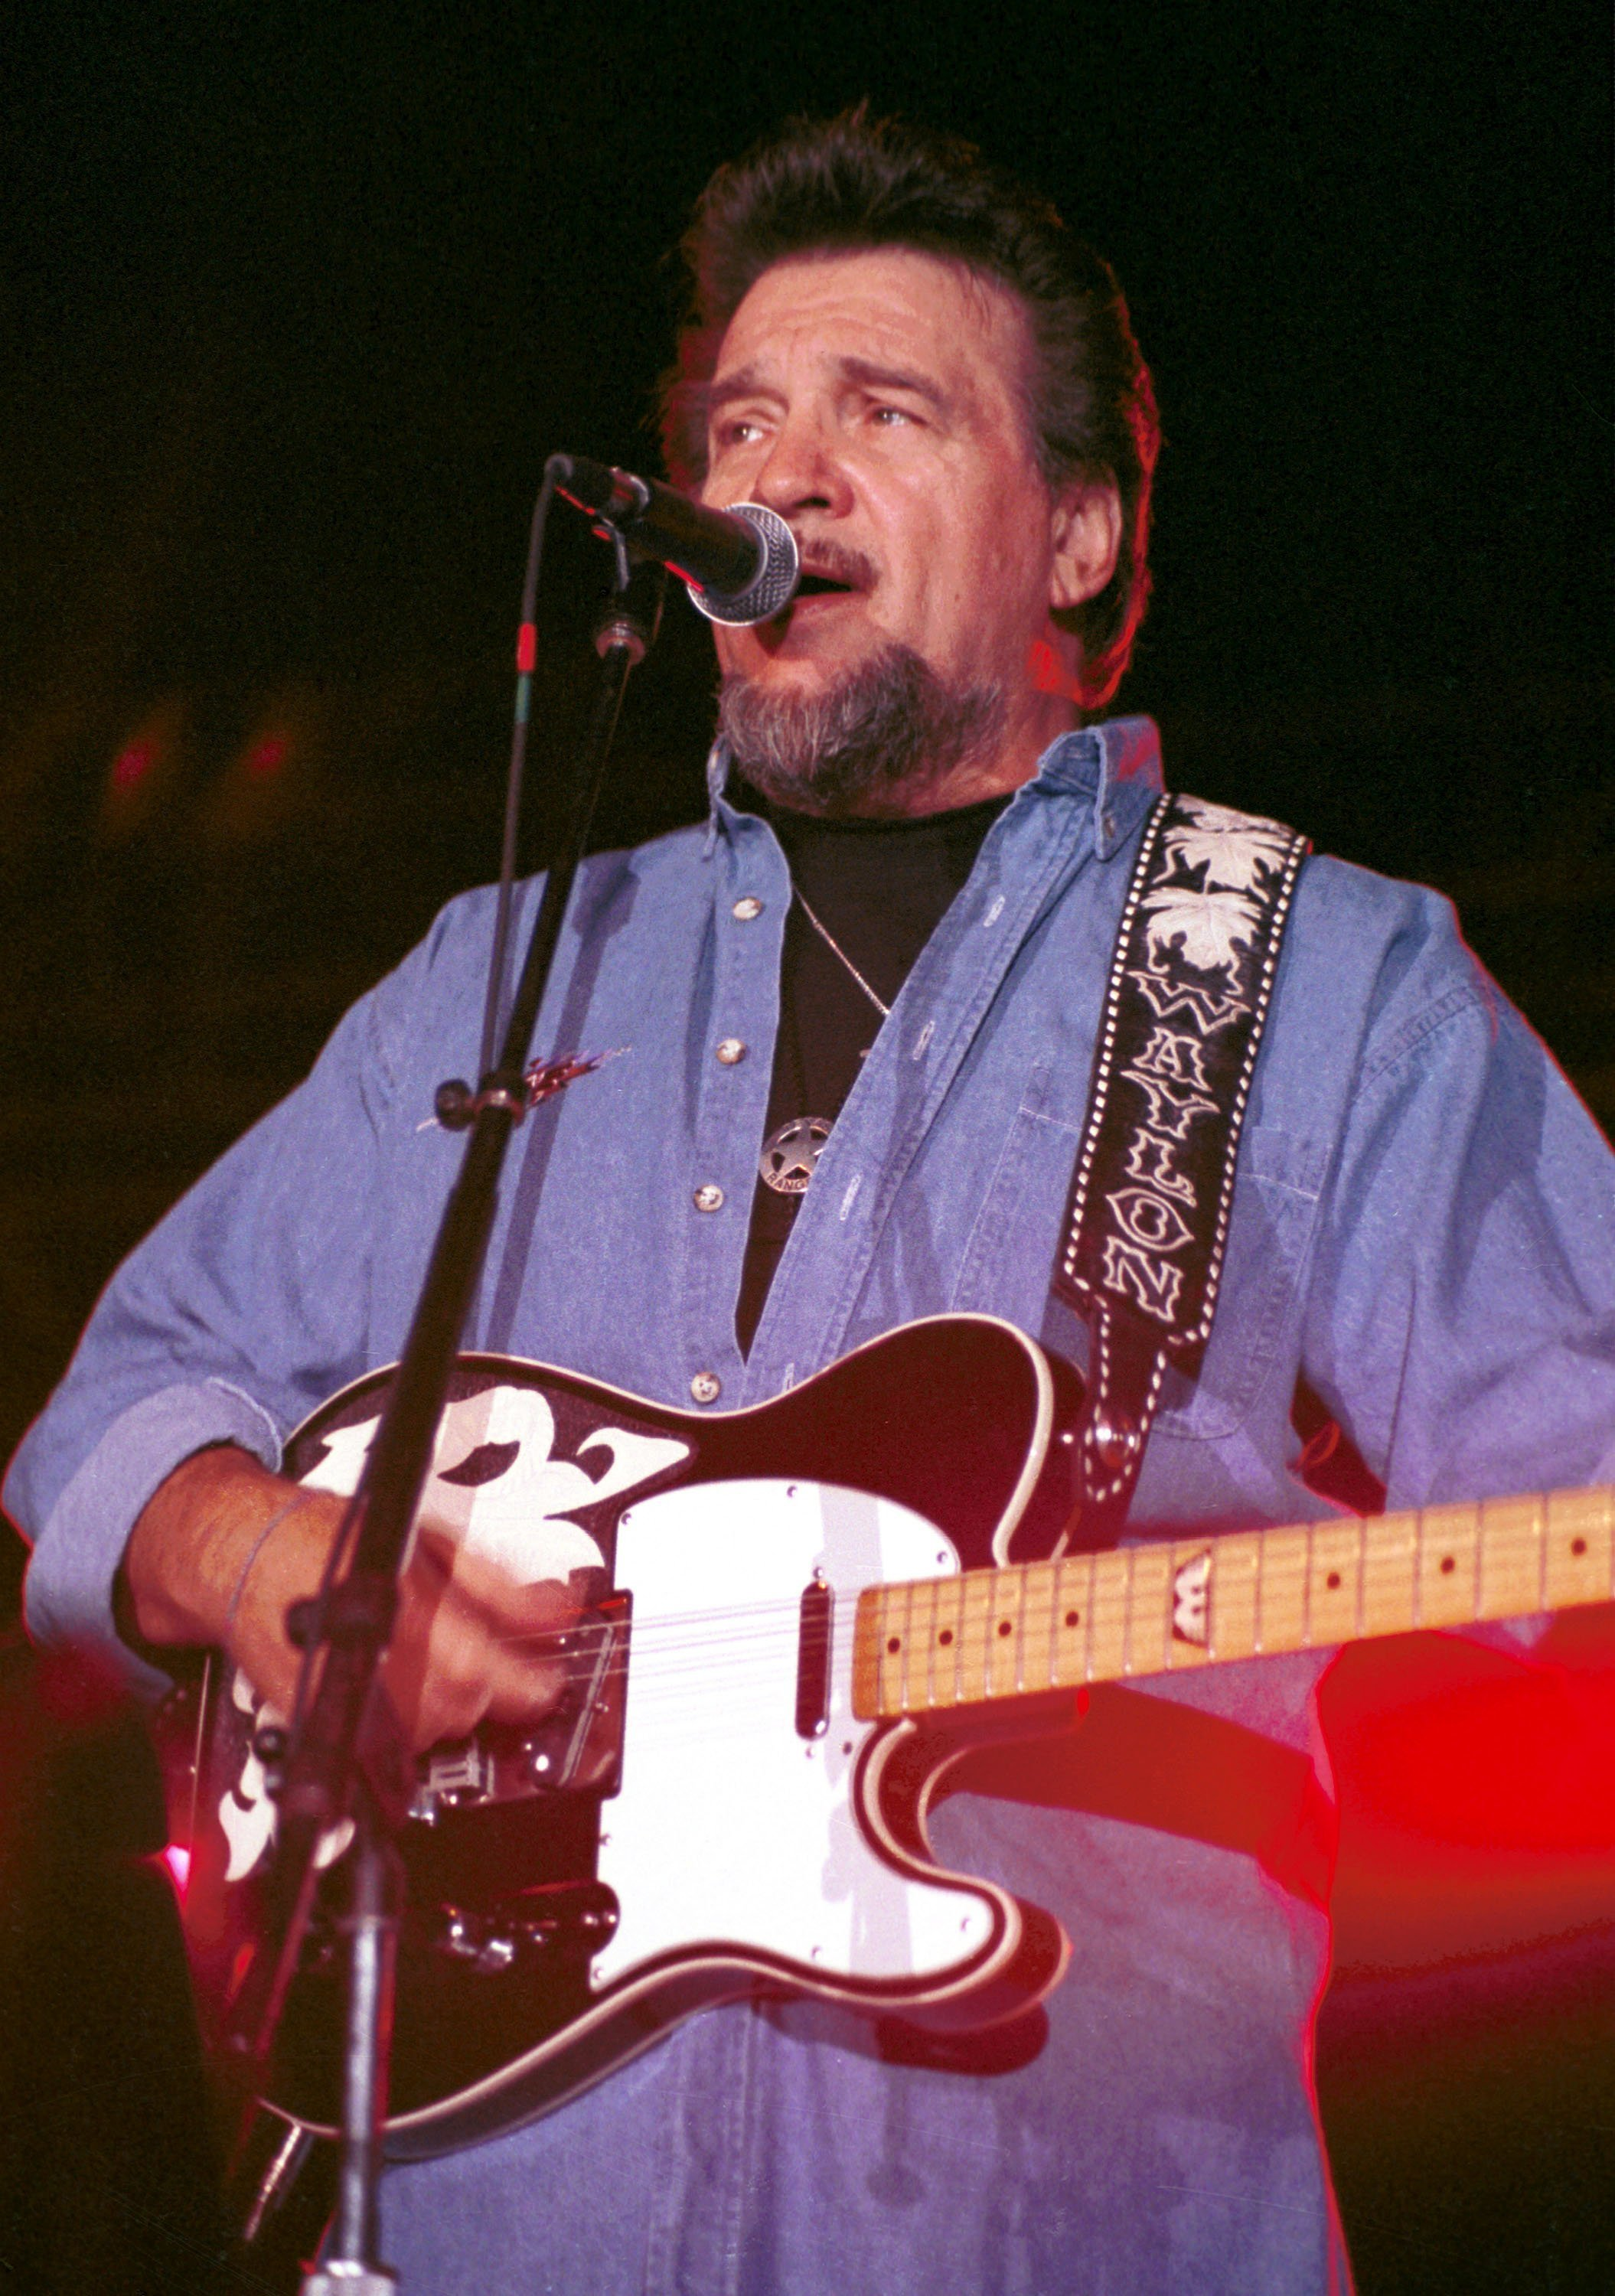 Waylon Jennings on stage - Getty Images